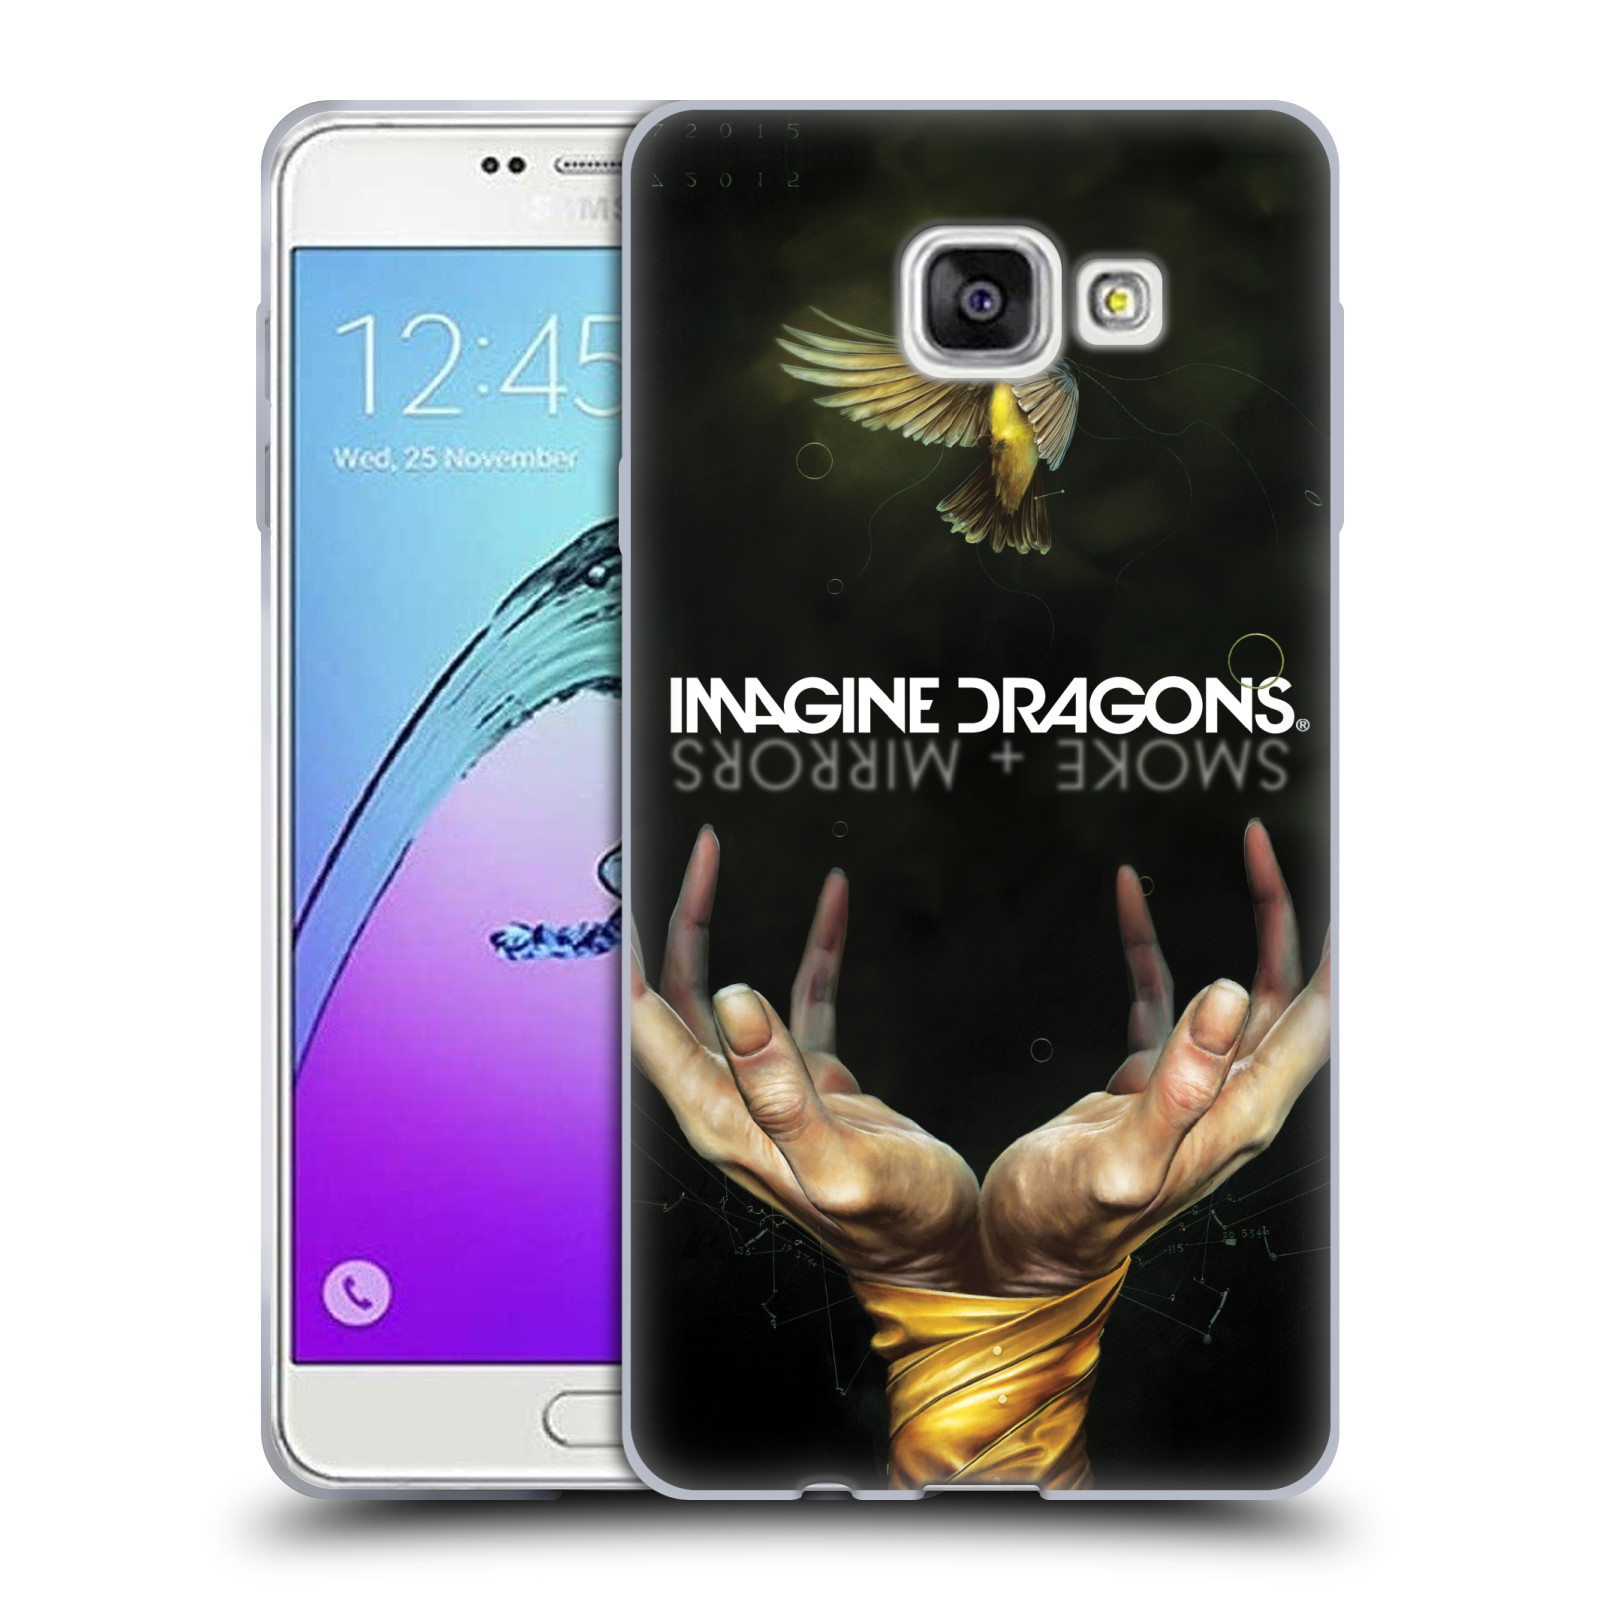 HEAD CASE silikonový obal na mobil Samsung Galaxy A7 2017 (A720) hudební skupina Imagine Dragons SMOKE and MIRRORS